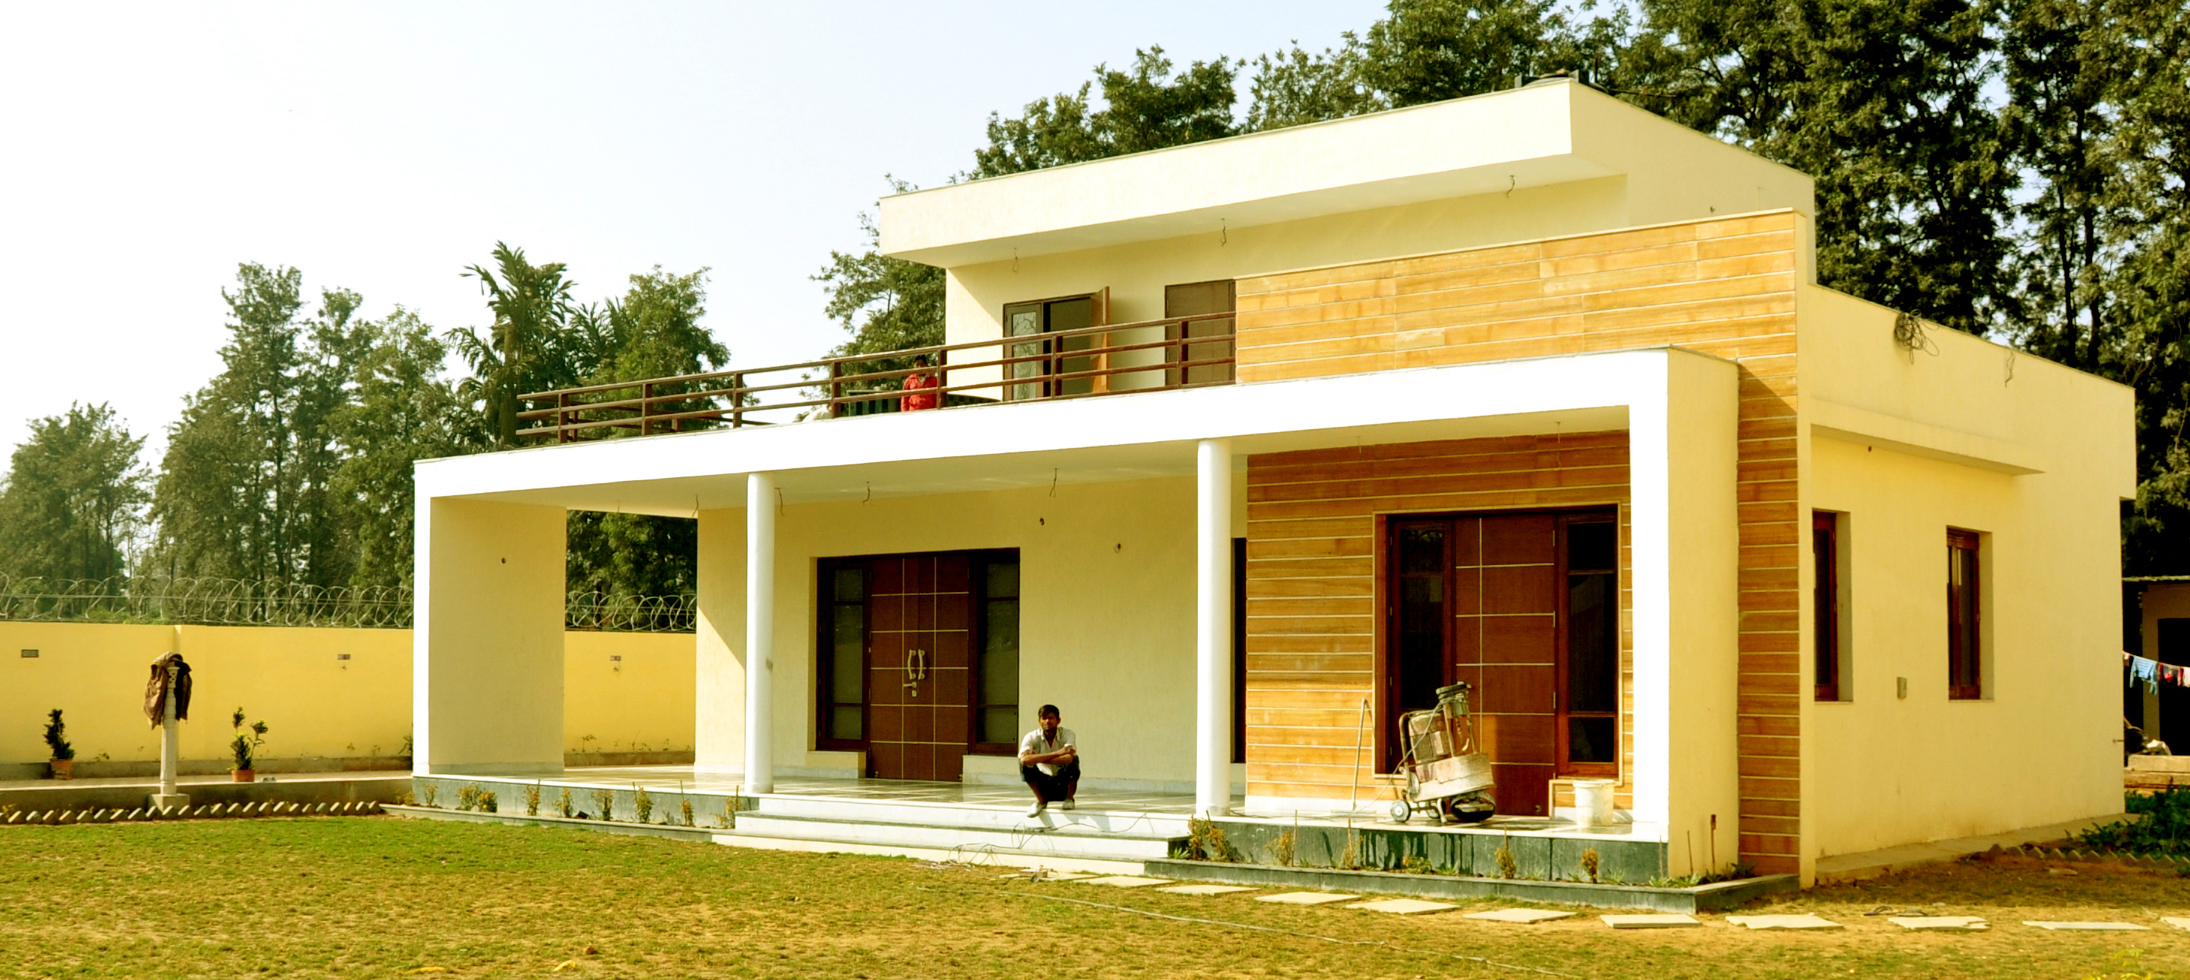 Chattarpur farm house south delhi architect magazine for Pictures of small farm houses